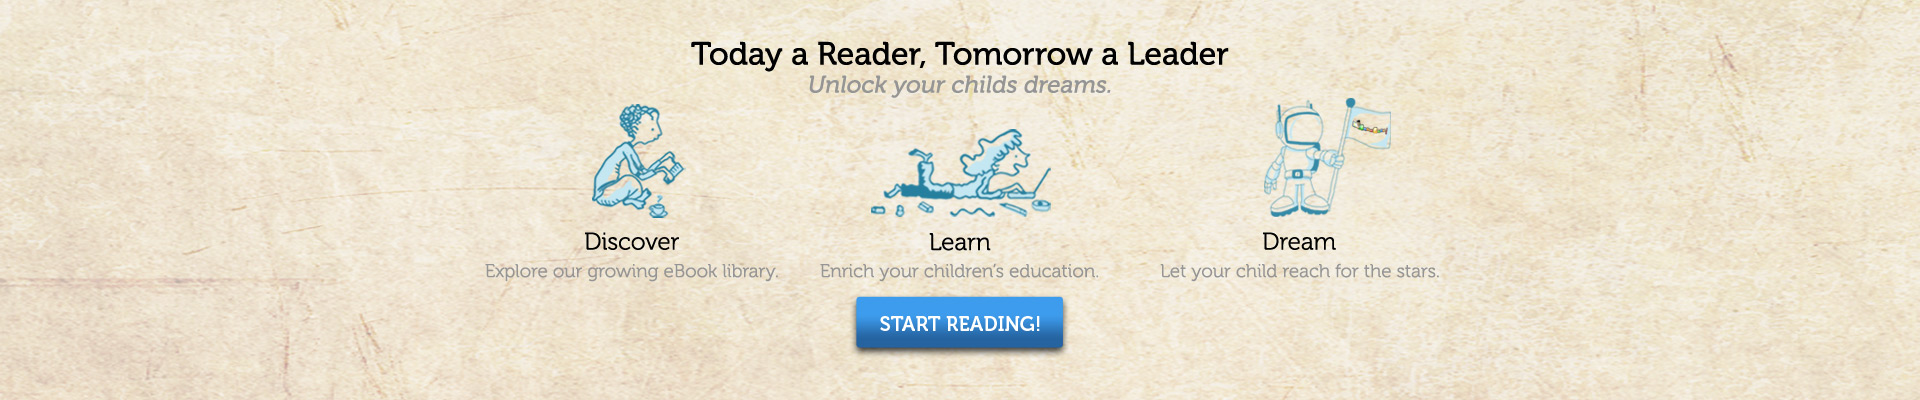 Today a Reader, Tomorrow a Leader. Unlock your child's dreams.